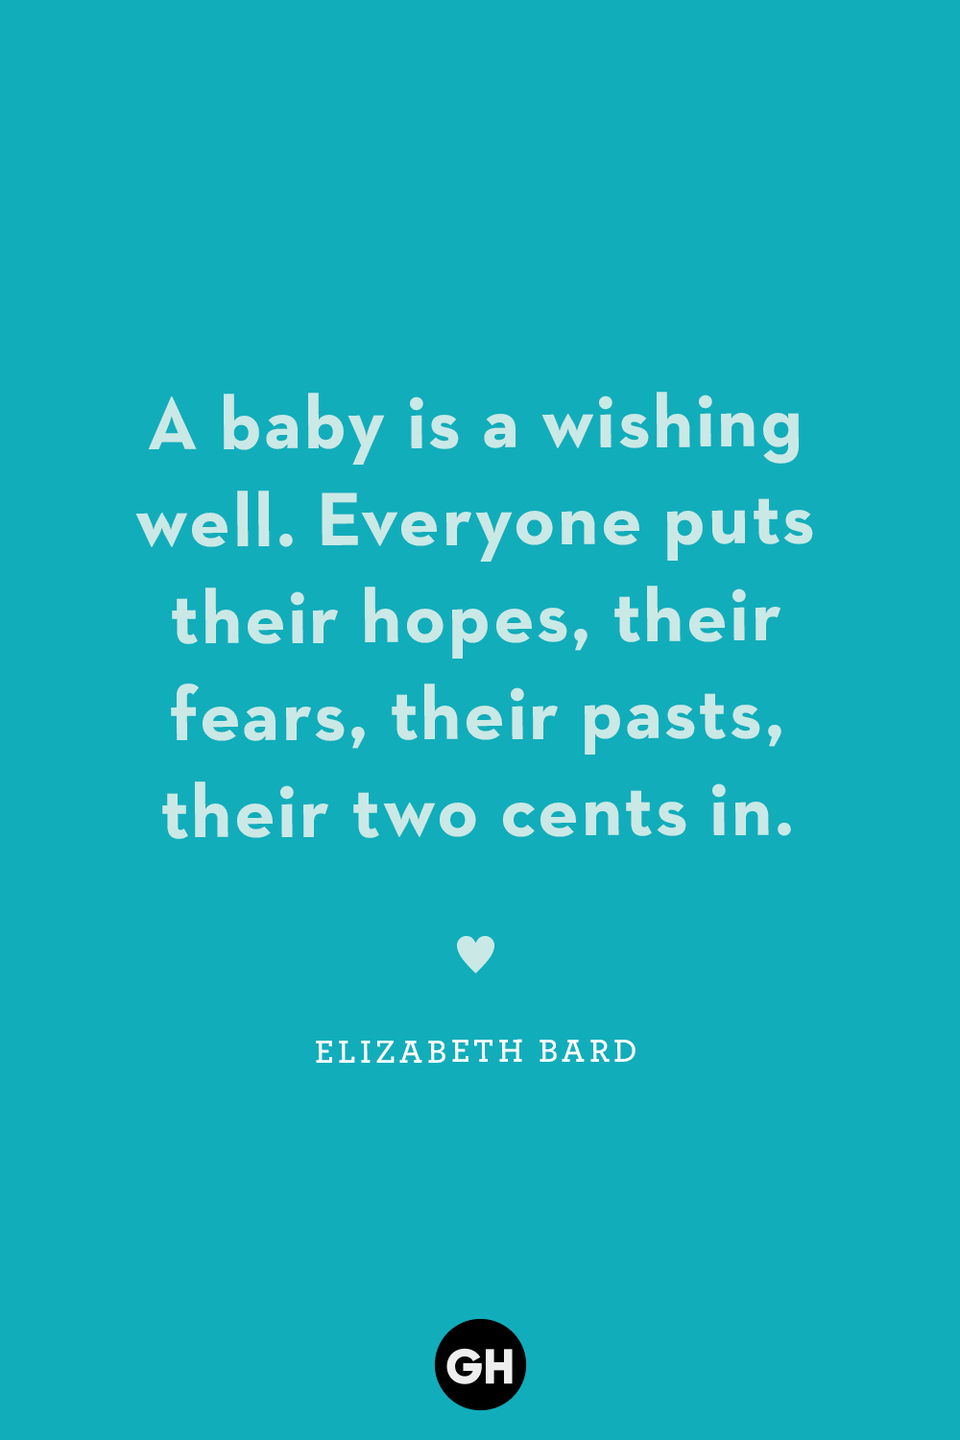 <p>A baby is a wishing well. Everyone puts their hopes, their fears, their pasts, their two cents in.</p>